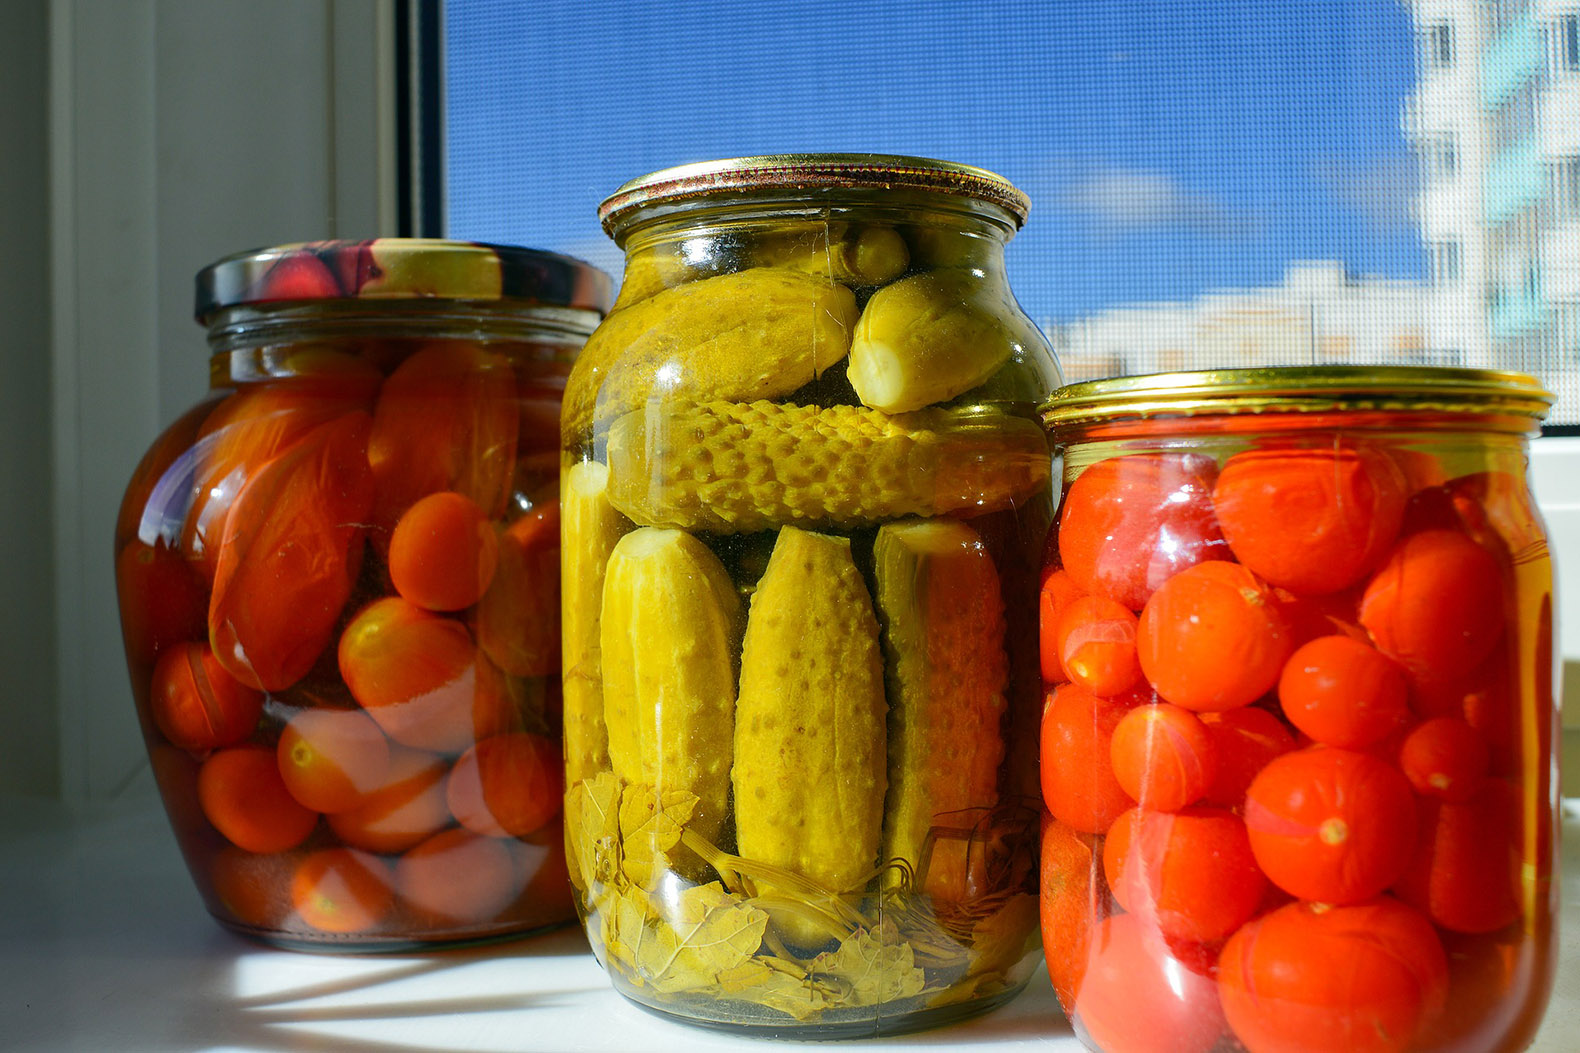 three cans of pickled tomatoes, cucumbers and radishes